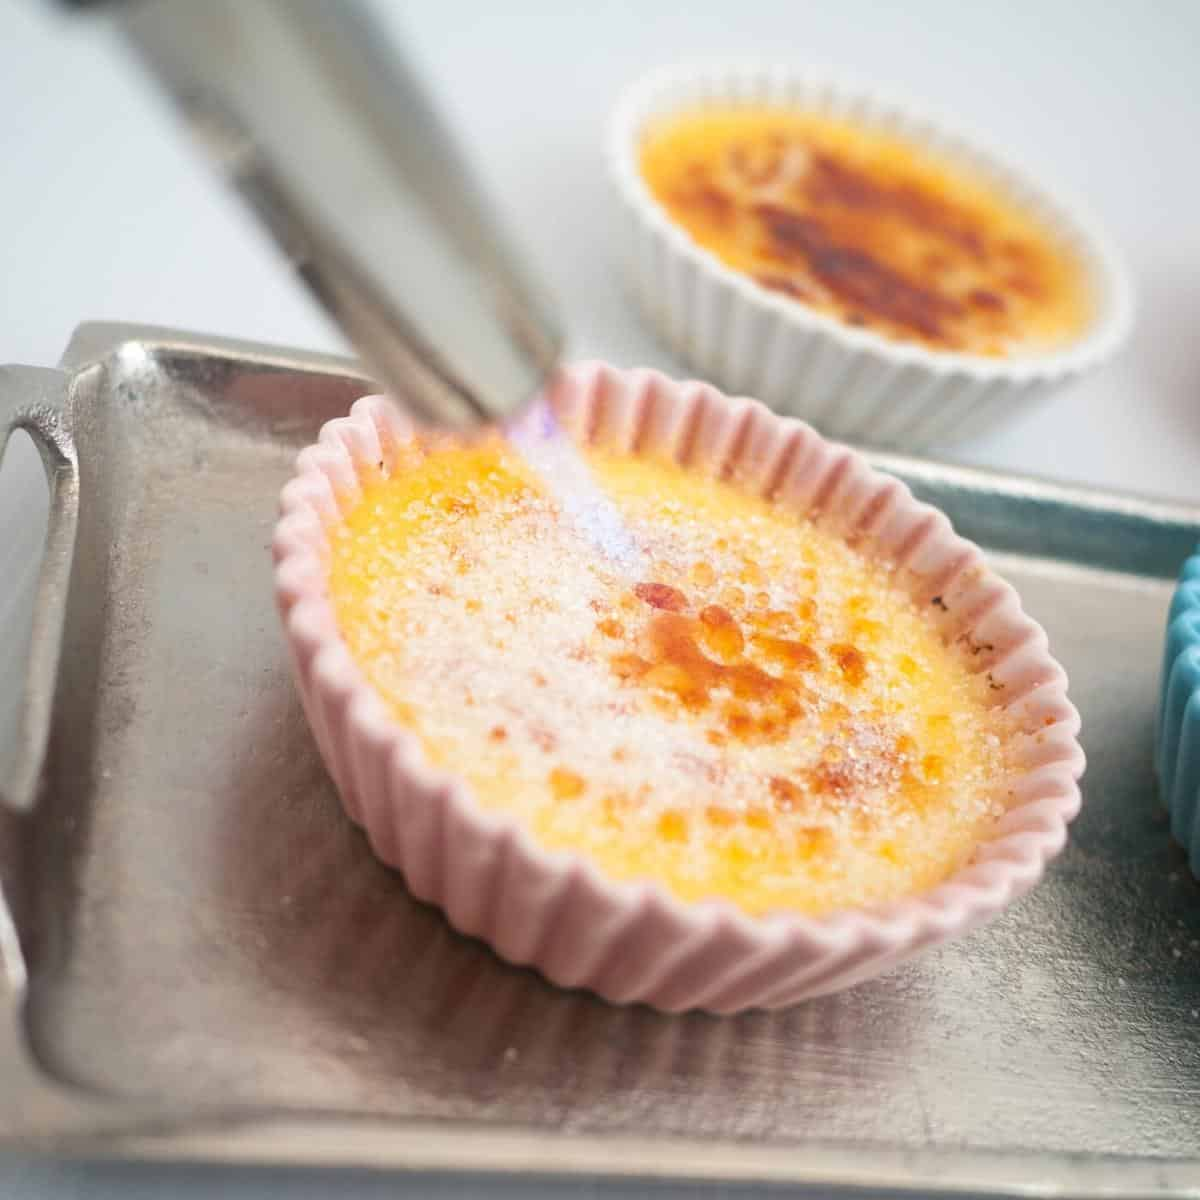 A blow torch flame over creme brulee.